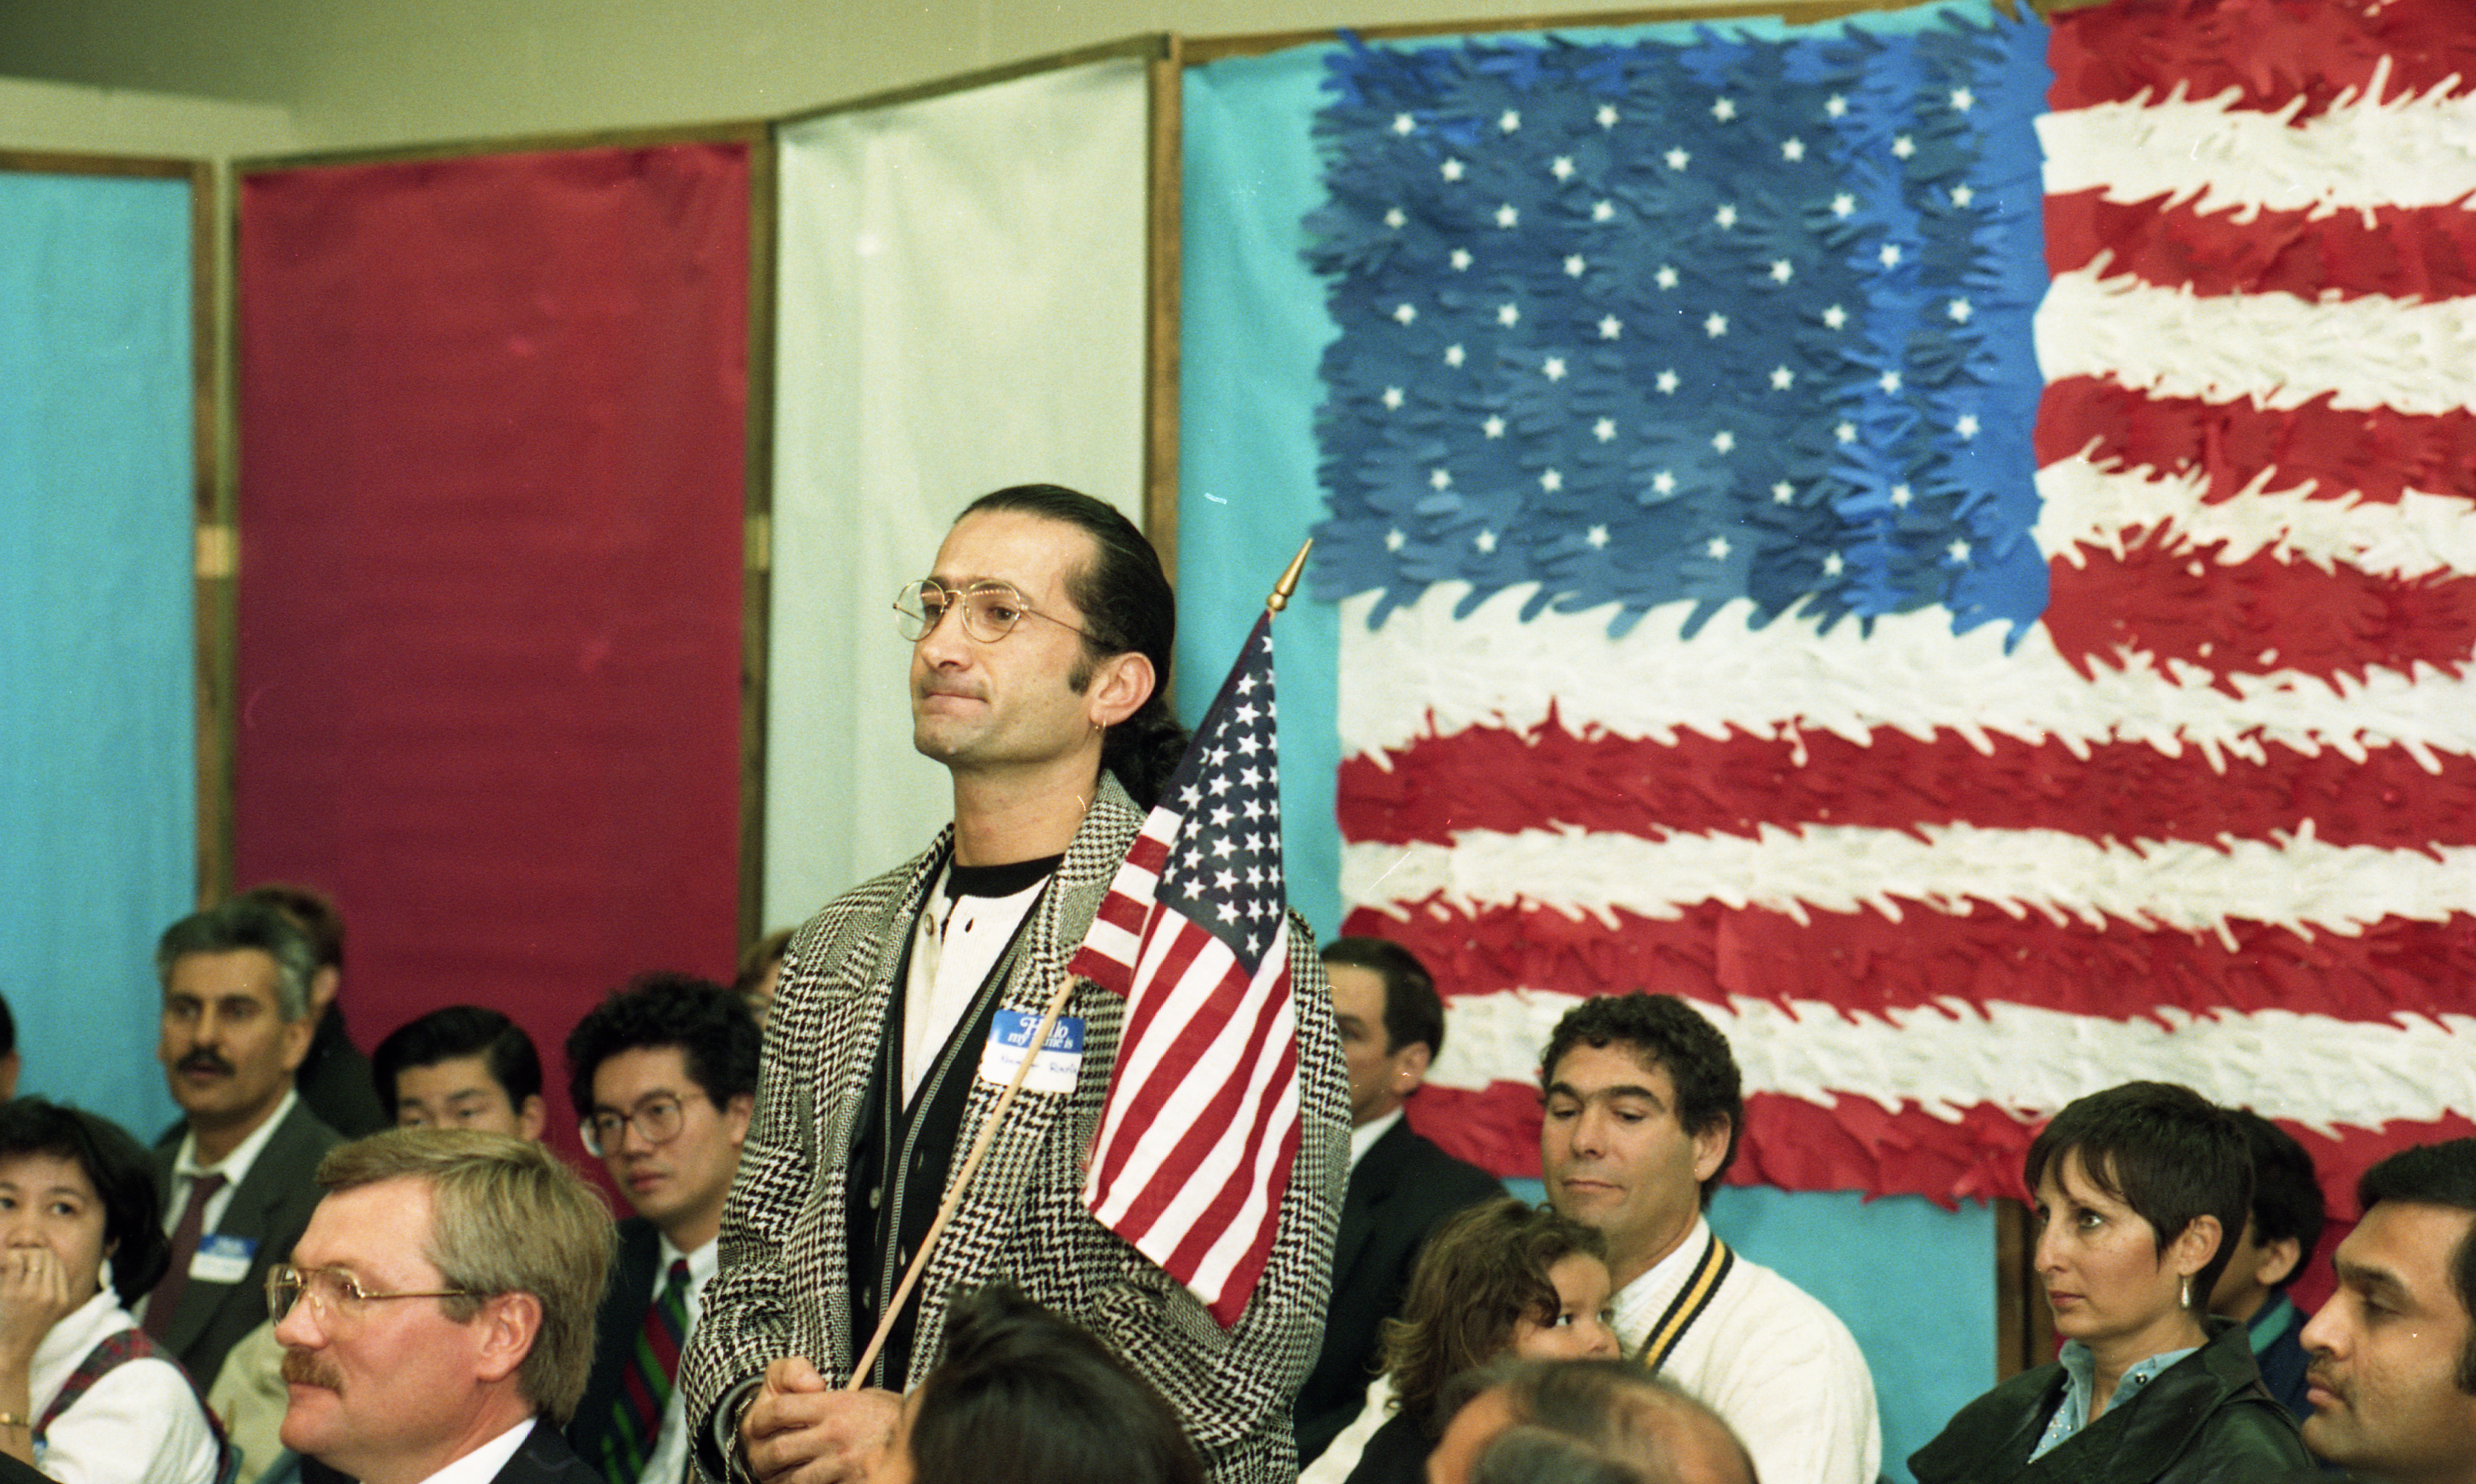 Ready To Become a U.S. Citizen at Citizenship Ceremony at Saline Houghton Elementary School, October 1993 image